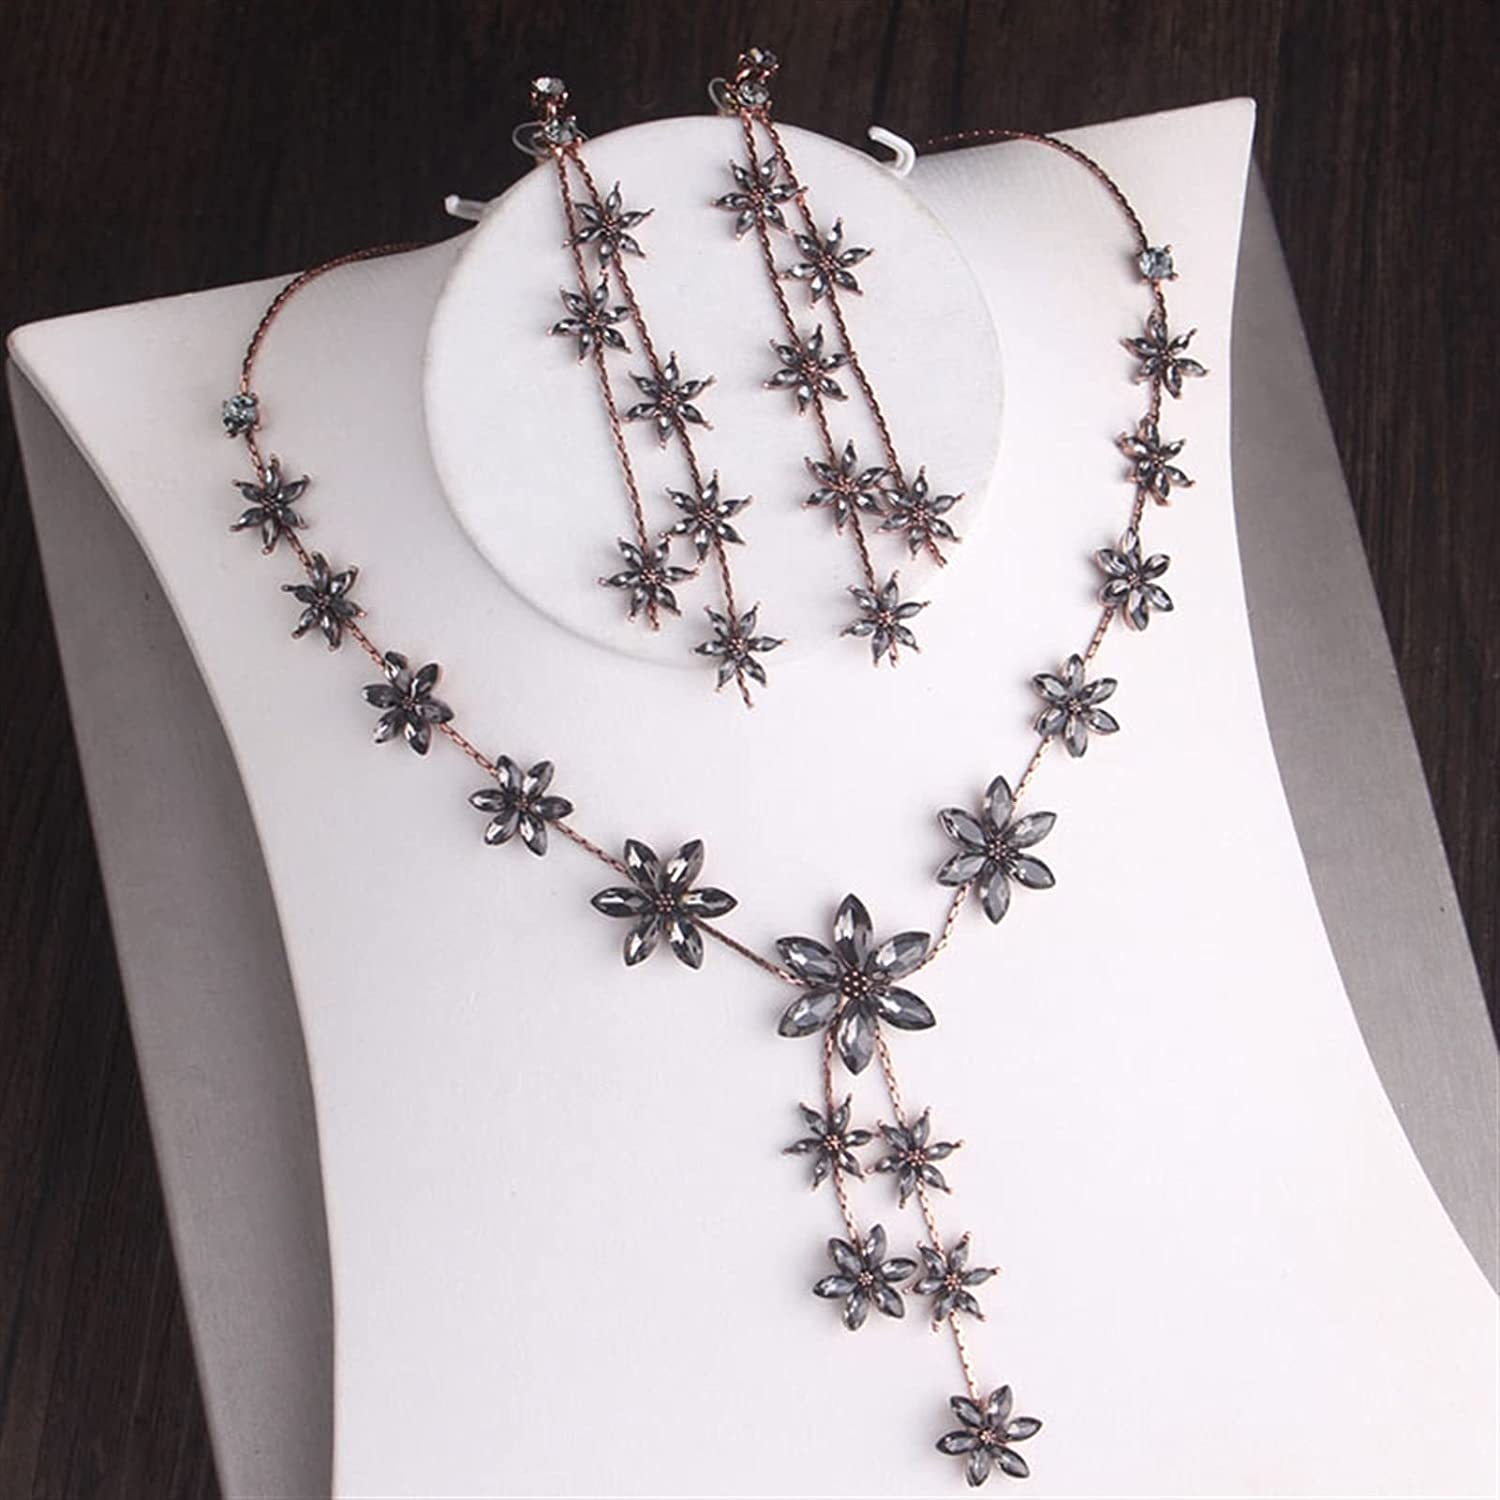 YUANBOO Baroque Vintage Black Crystal Jewelry Ranking TOP6 Bridal Rhines Super beauty product restock quality top Sets